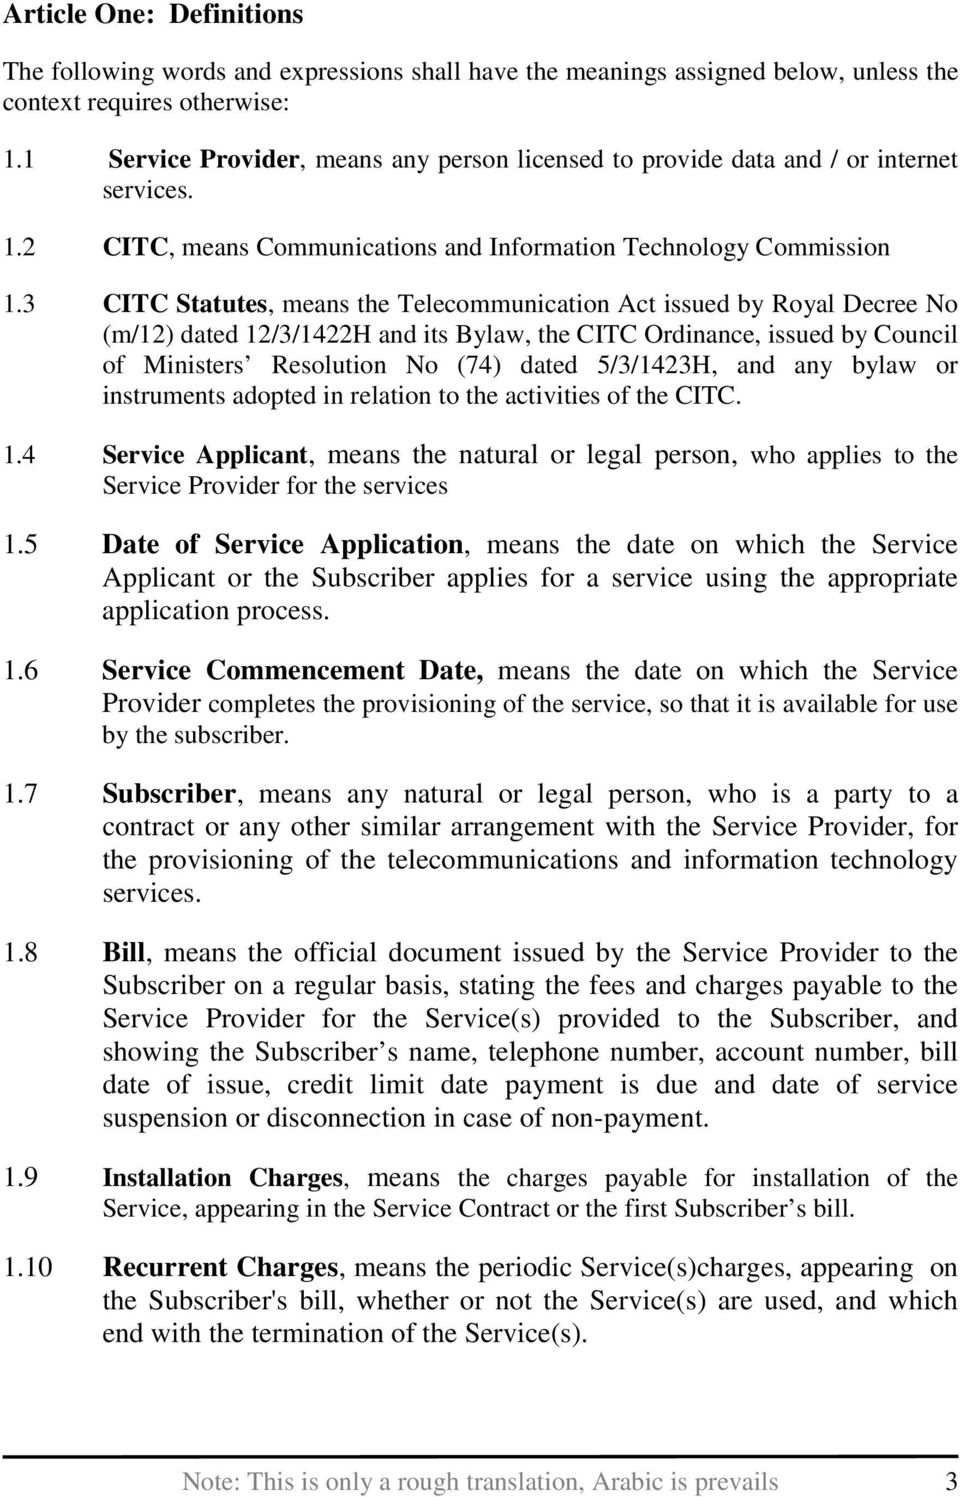 3 CITC Statutes, means the Telecommunication Act issued by Royal Decree No (m/12) dated 12/3/1422H and its Bylaw, the CITC Ordinance, issued by Council of Ministers Resolution No (74) dated